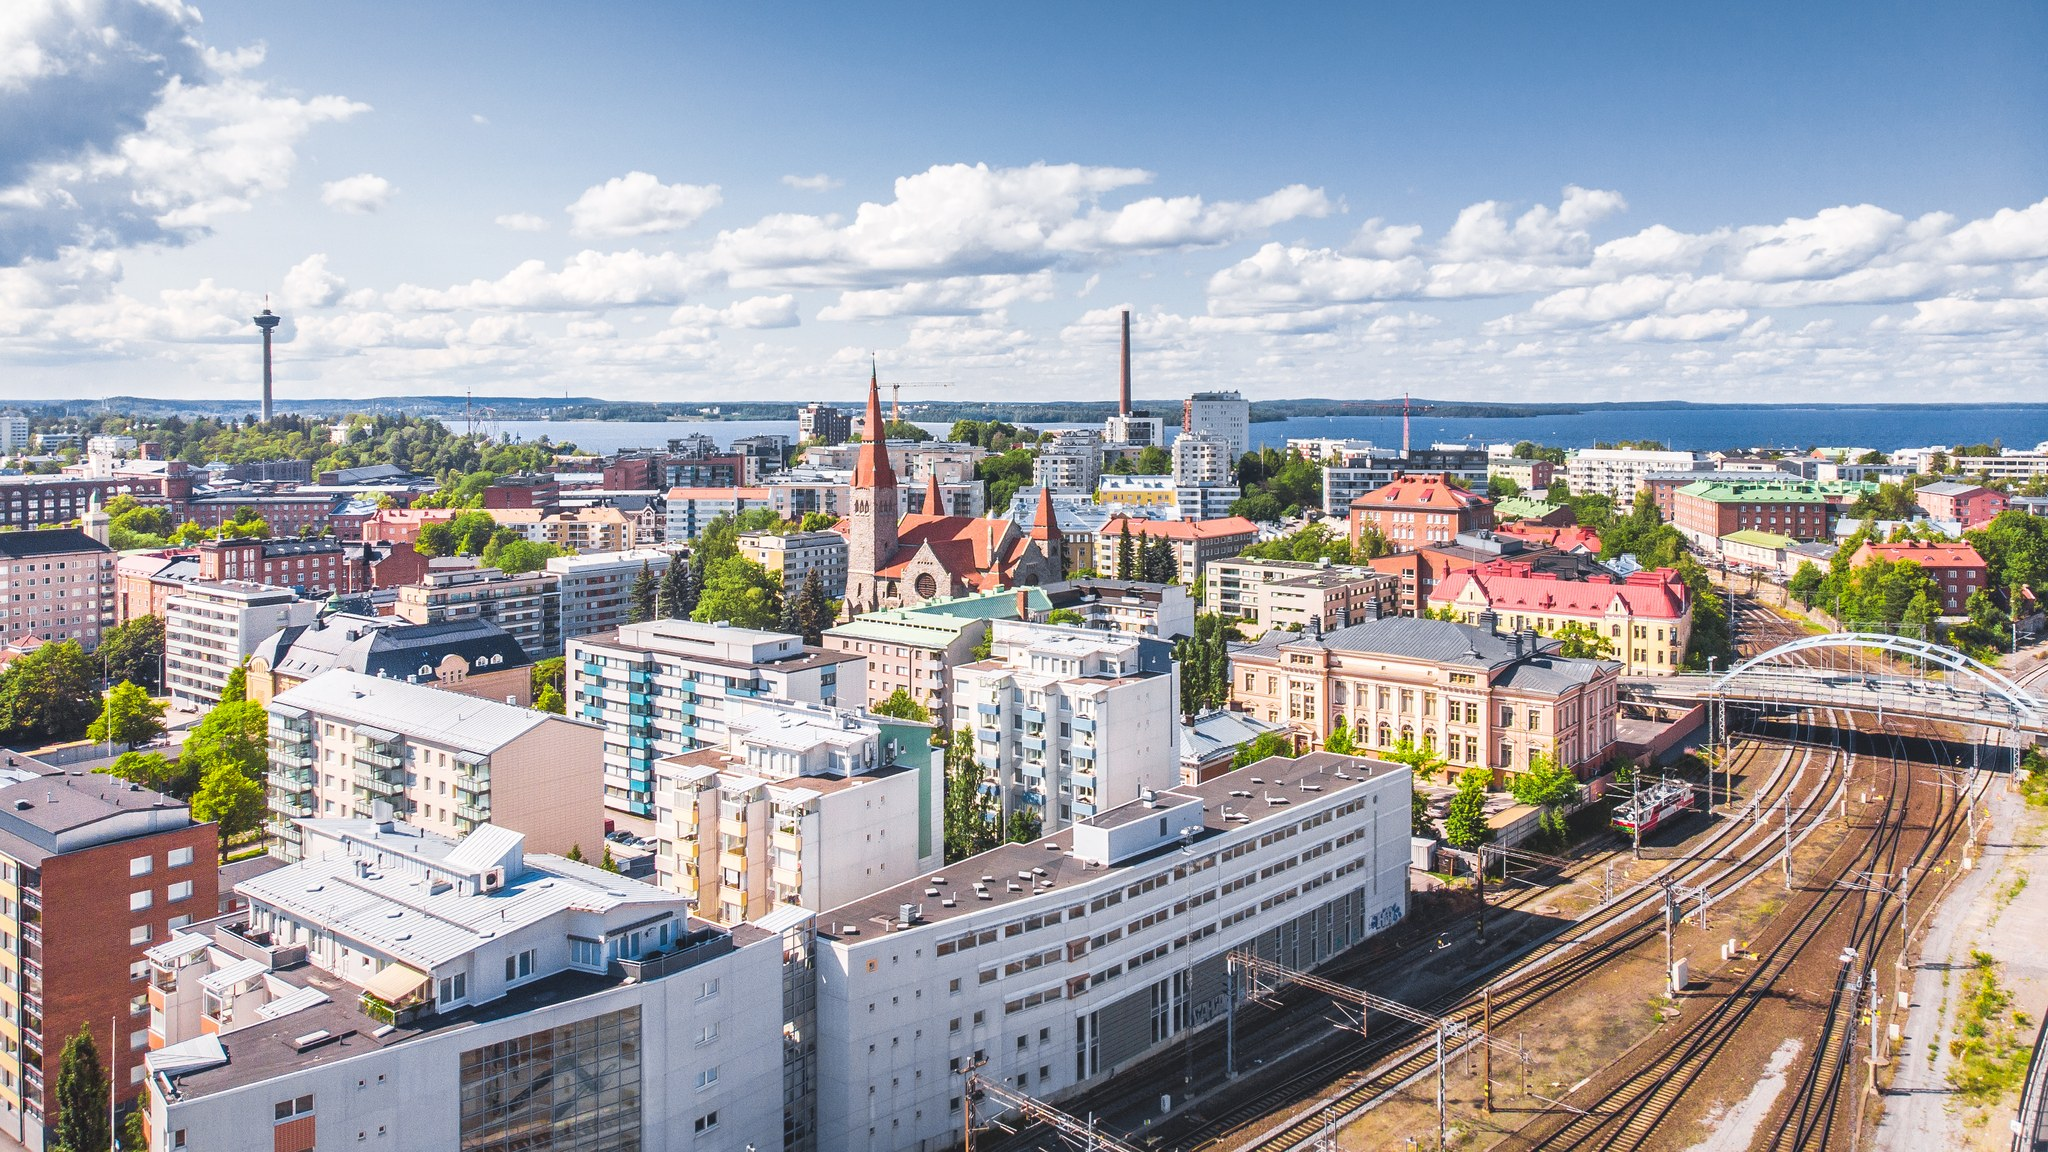 Visit Tampere Train Station railway drone view Laura Vanzo 3